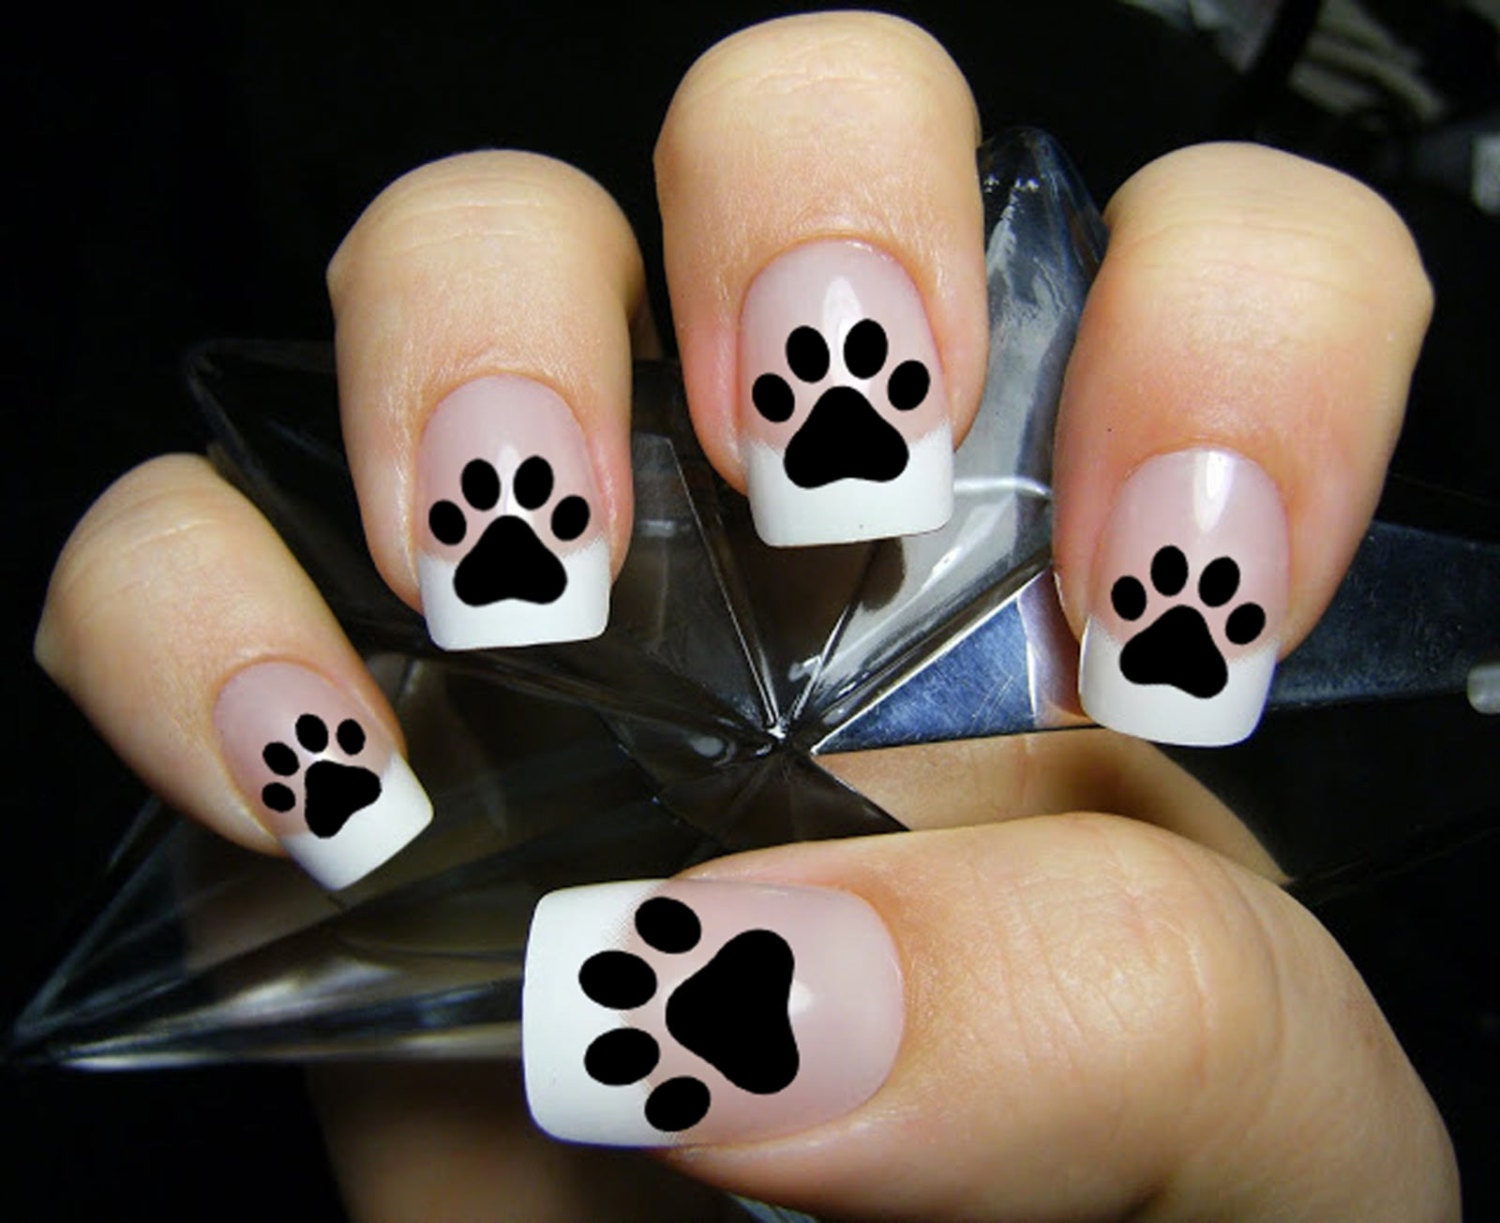 48 PAW PRINTS Nail Decals (PAW) - Kitten Puppy Dog Paws Black Cat ...